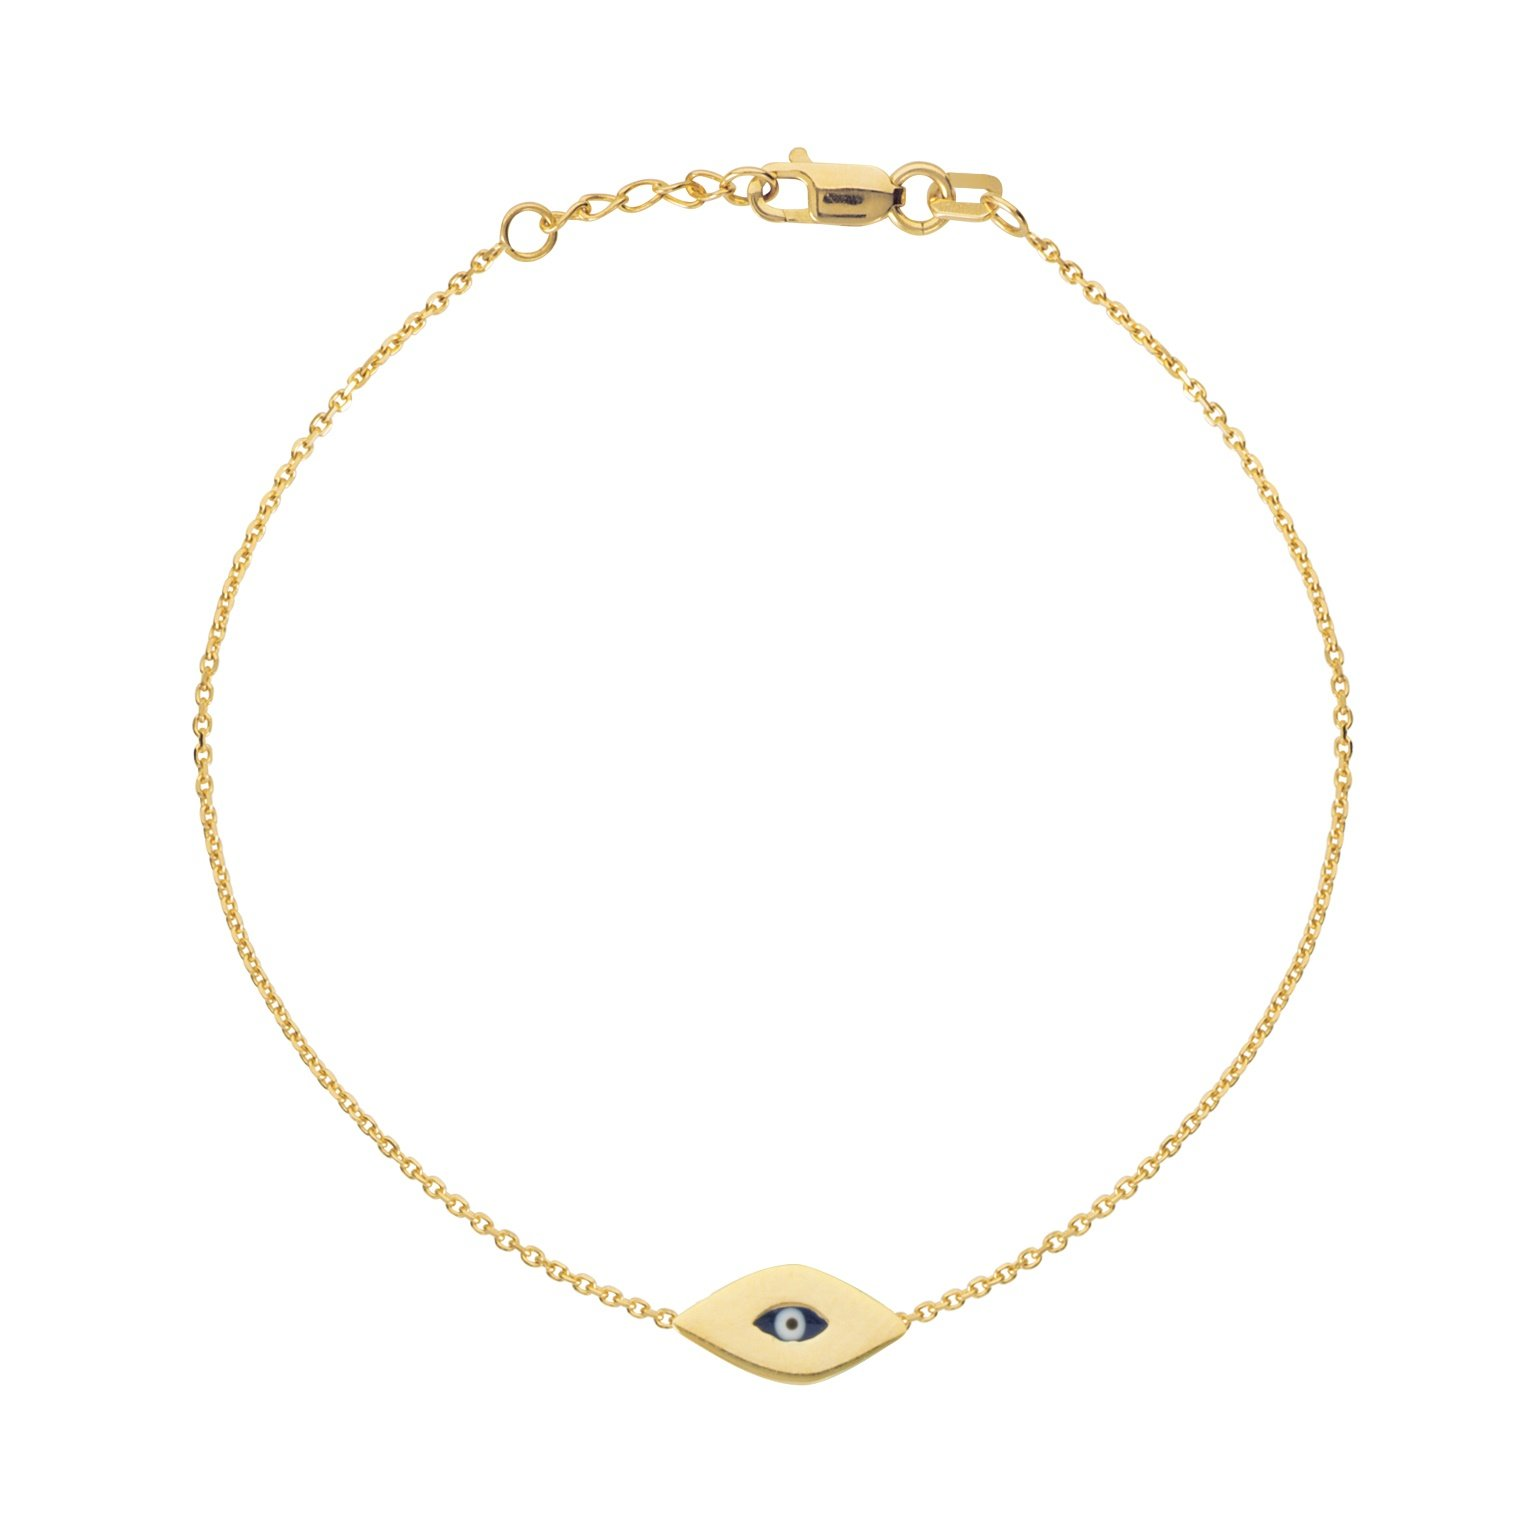 Ritastephens 14k Solid Yellow Gold Mini Evil Eye Good Luck Charm Bracelet Adjustable 7-7.5 Inches